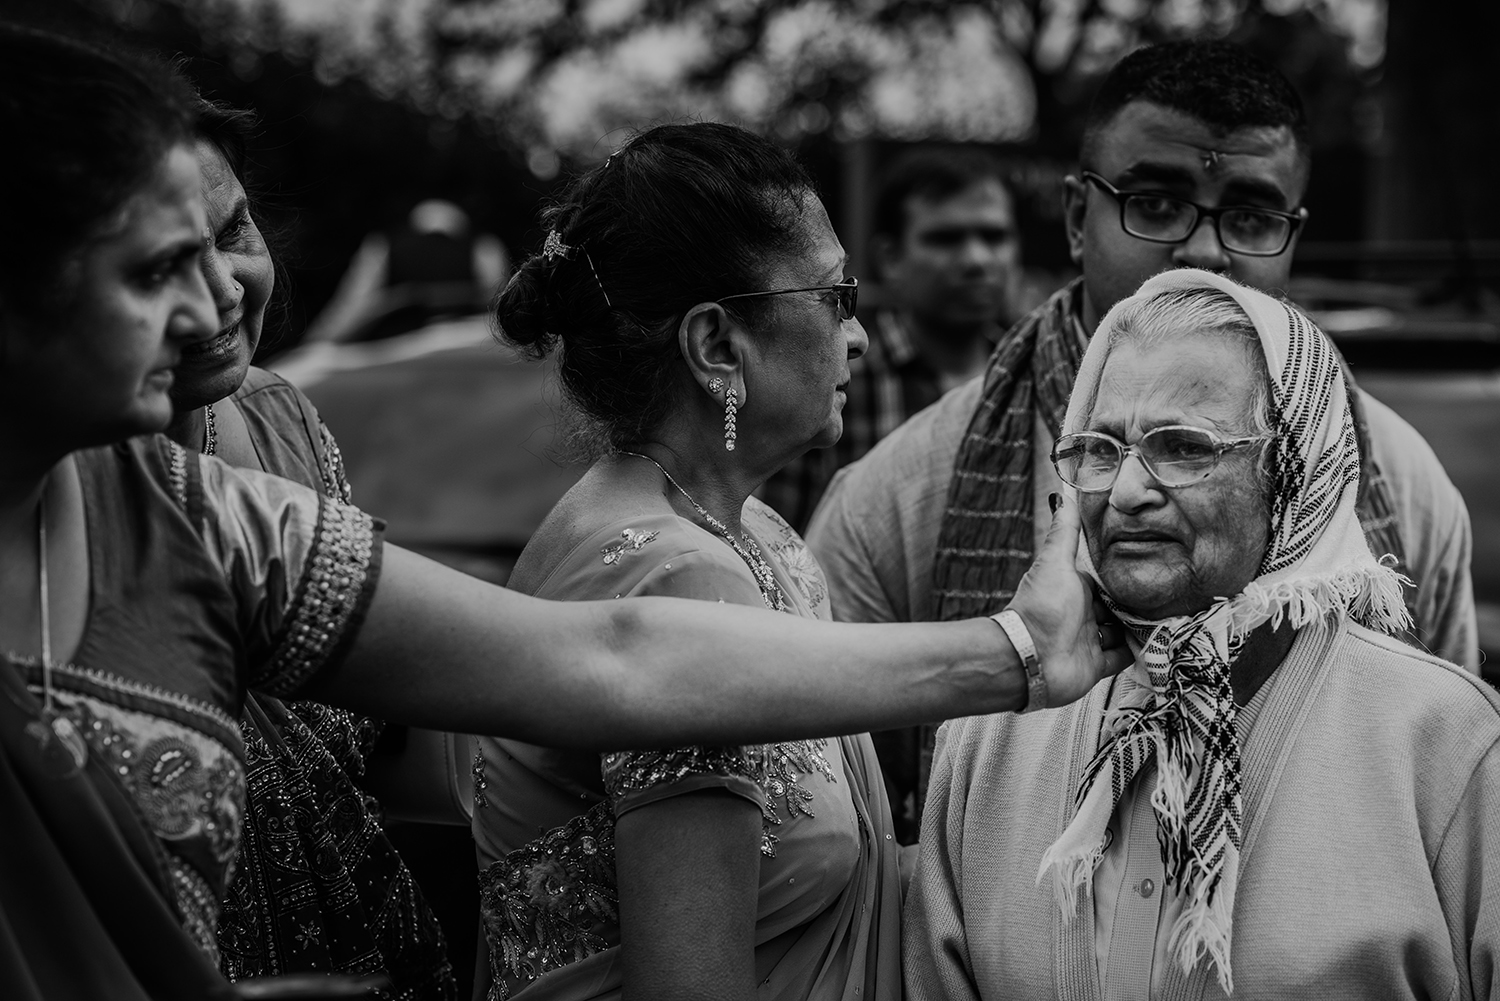 bw photo. Brides aunt tenderly comforting an emotional grandmother